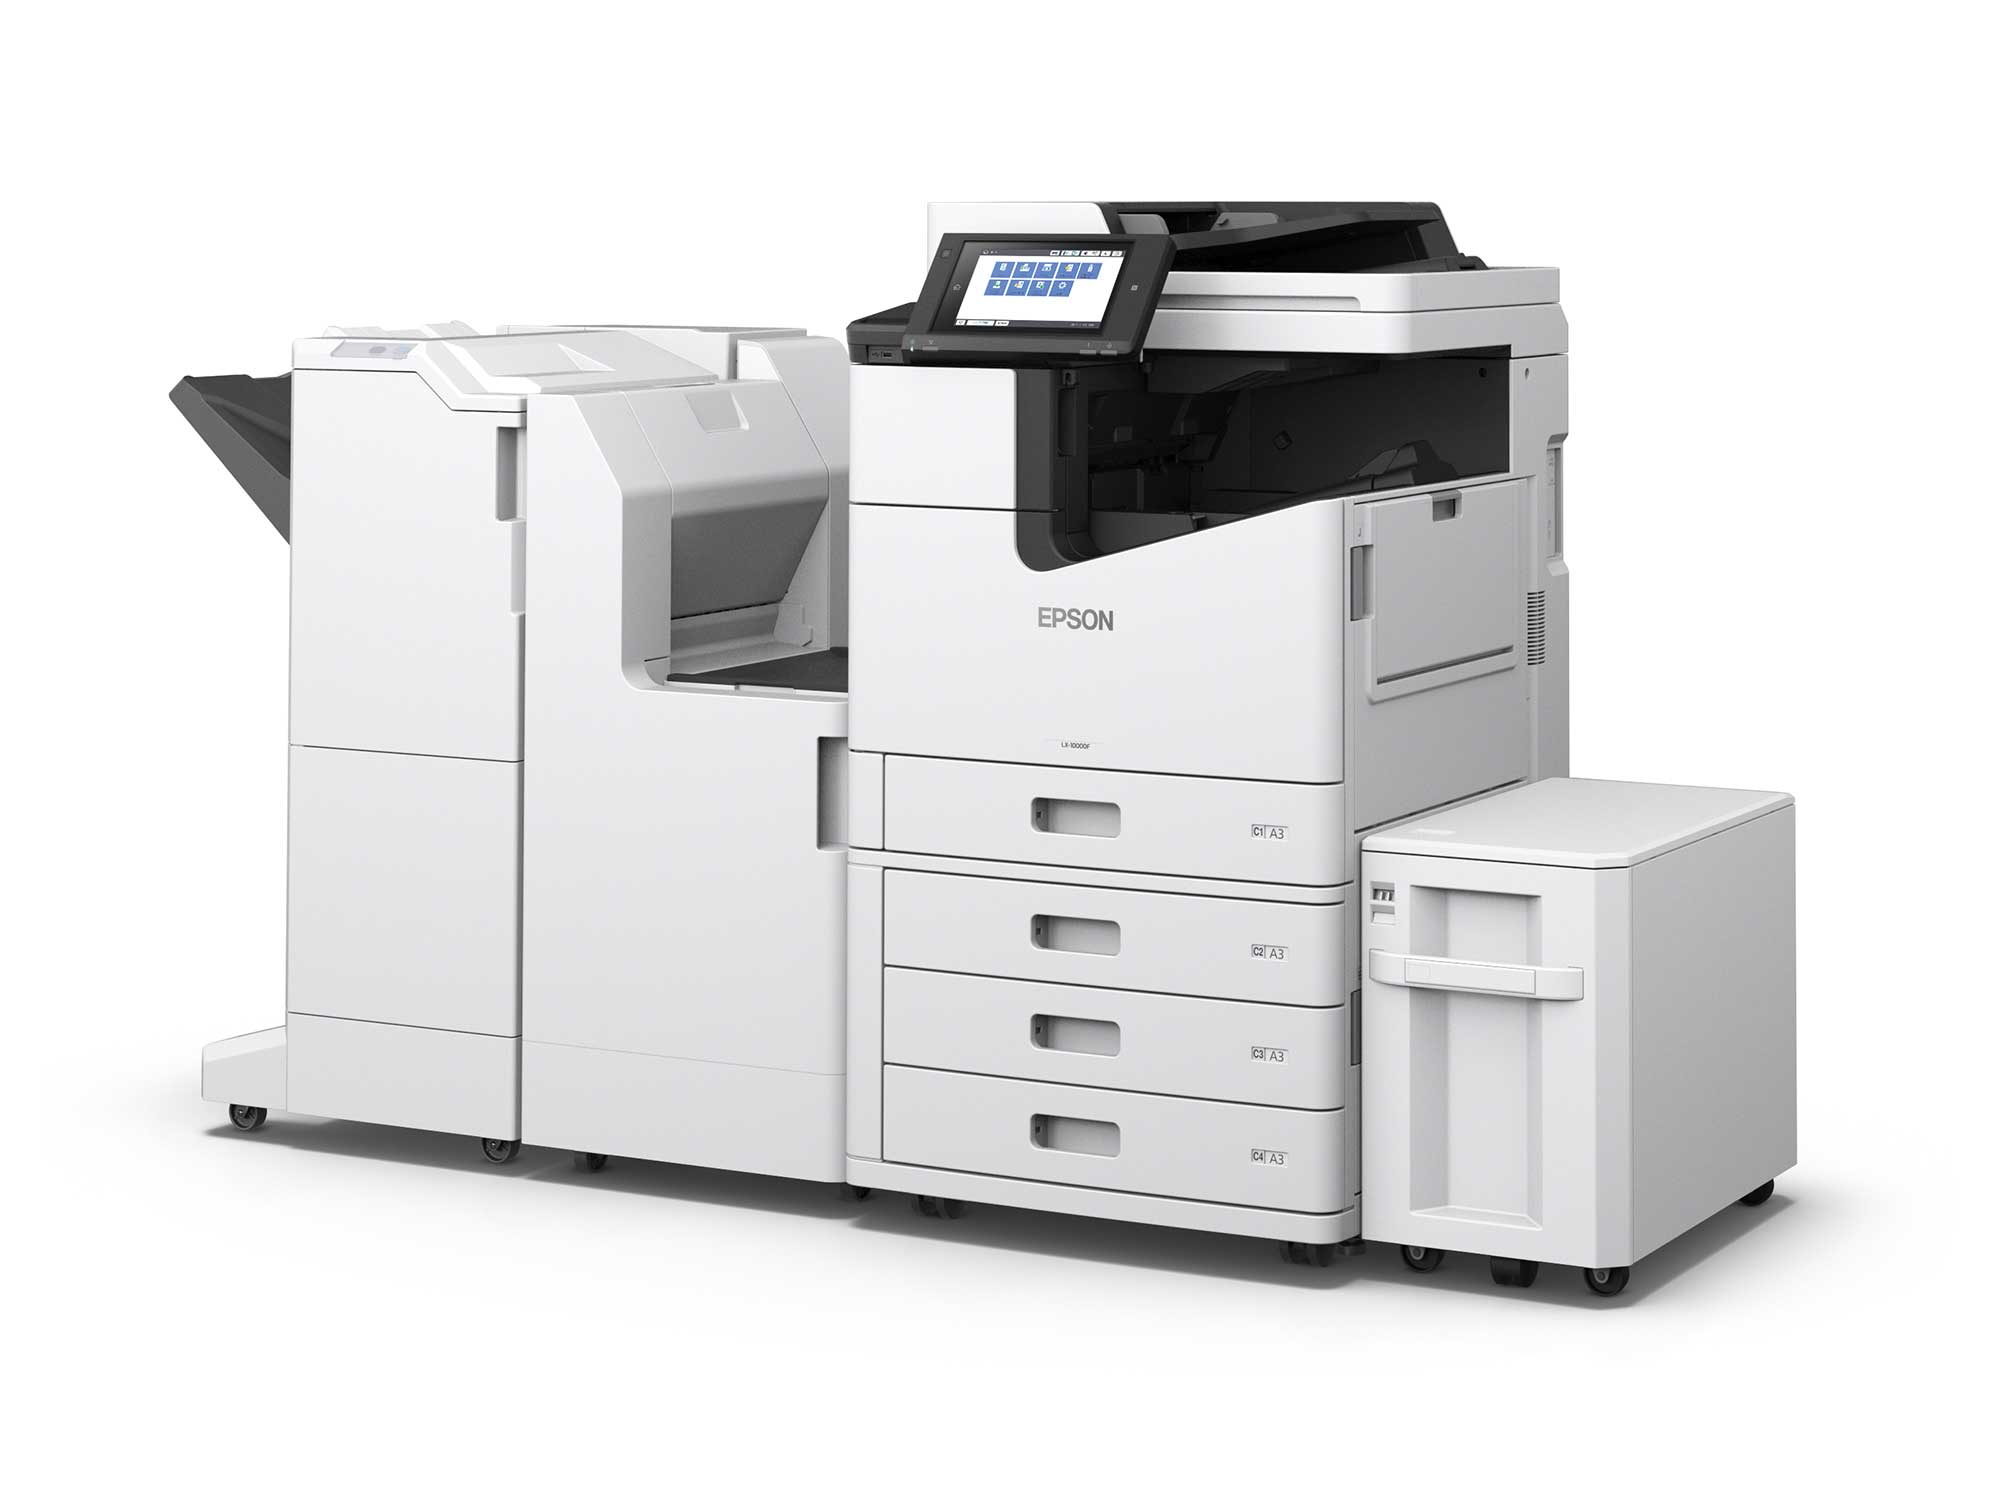 Epson WorkForce Enterprise WF-C20590 with Optional Accessories